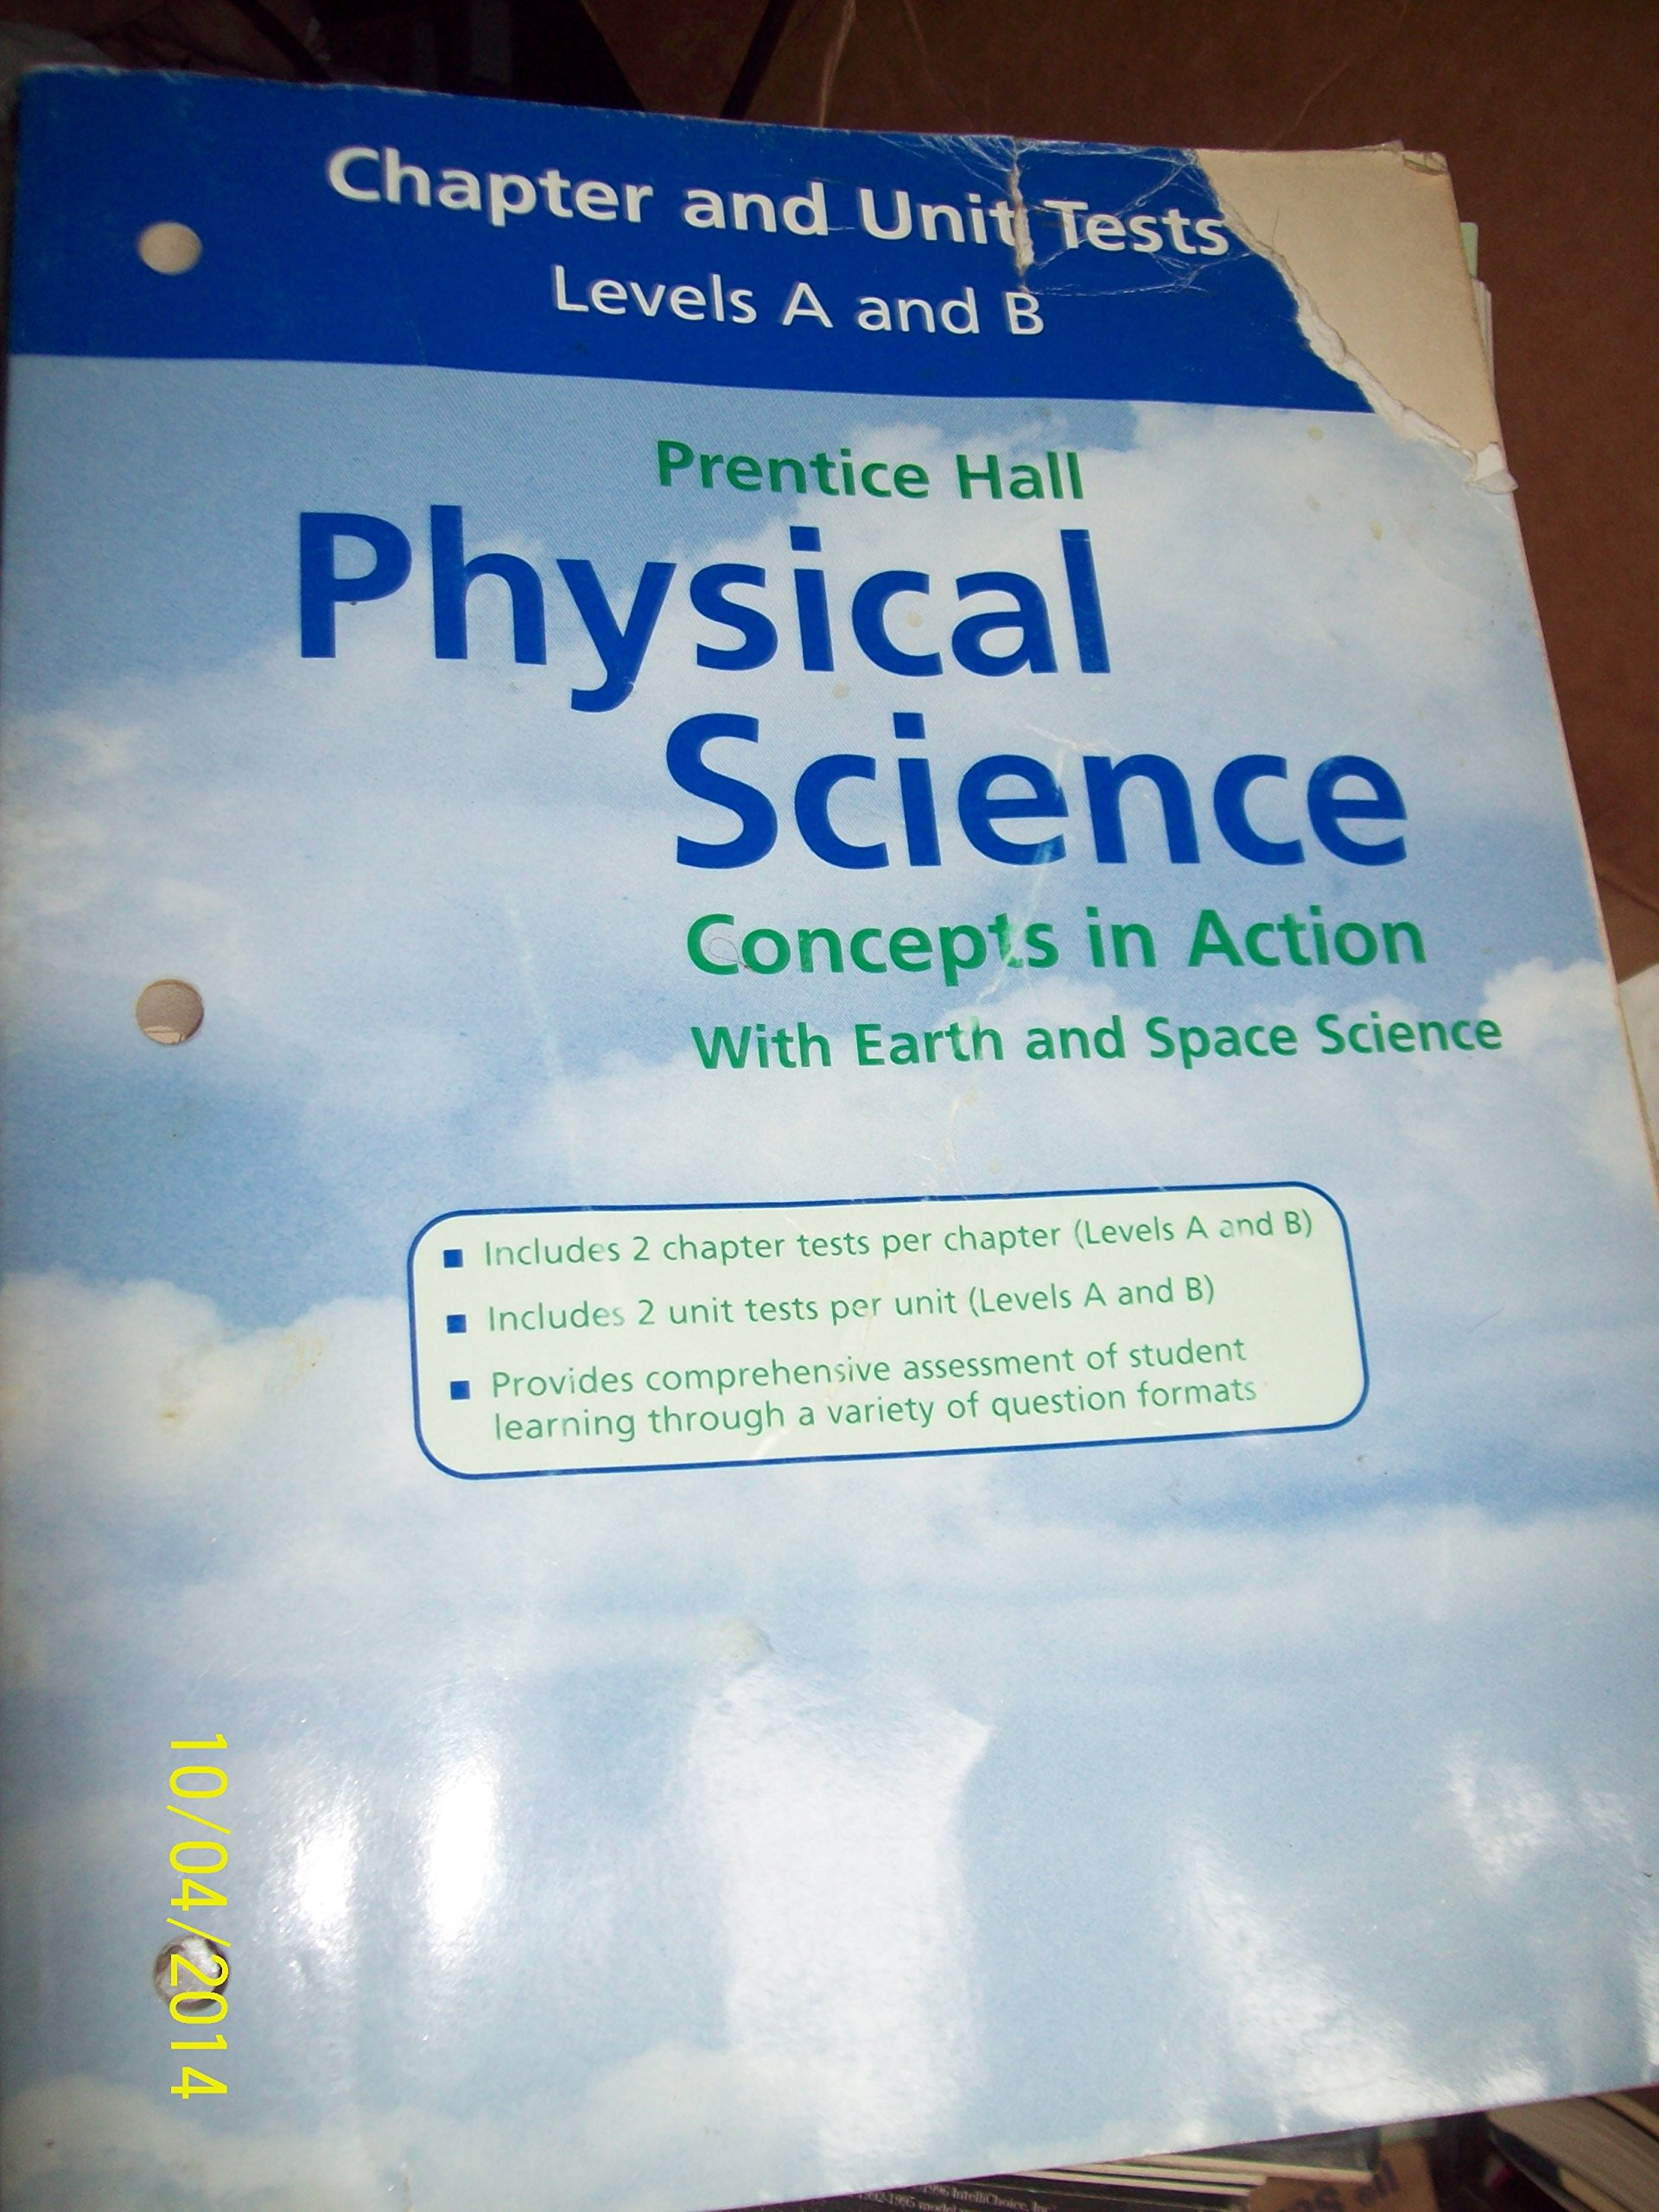 Worksheets Prentice Hall Physical Science Concepts In Action Worksheets chapter and unit tests levels a b prentice hall physical science concepts in action with earth space prentic